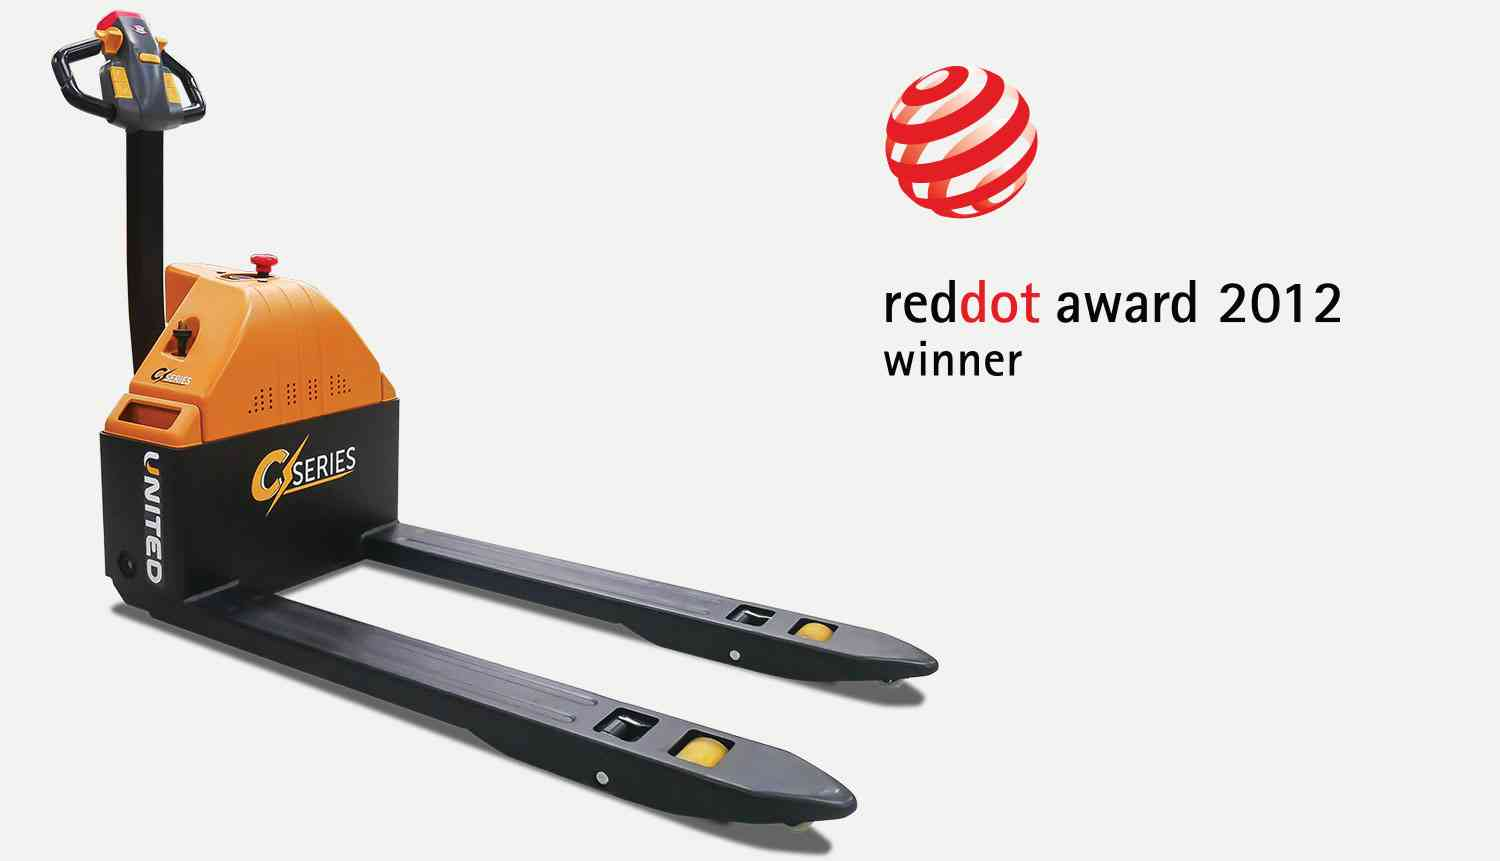 NPP15E pallet truck was awarded the Red Dot Award in 2012